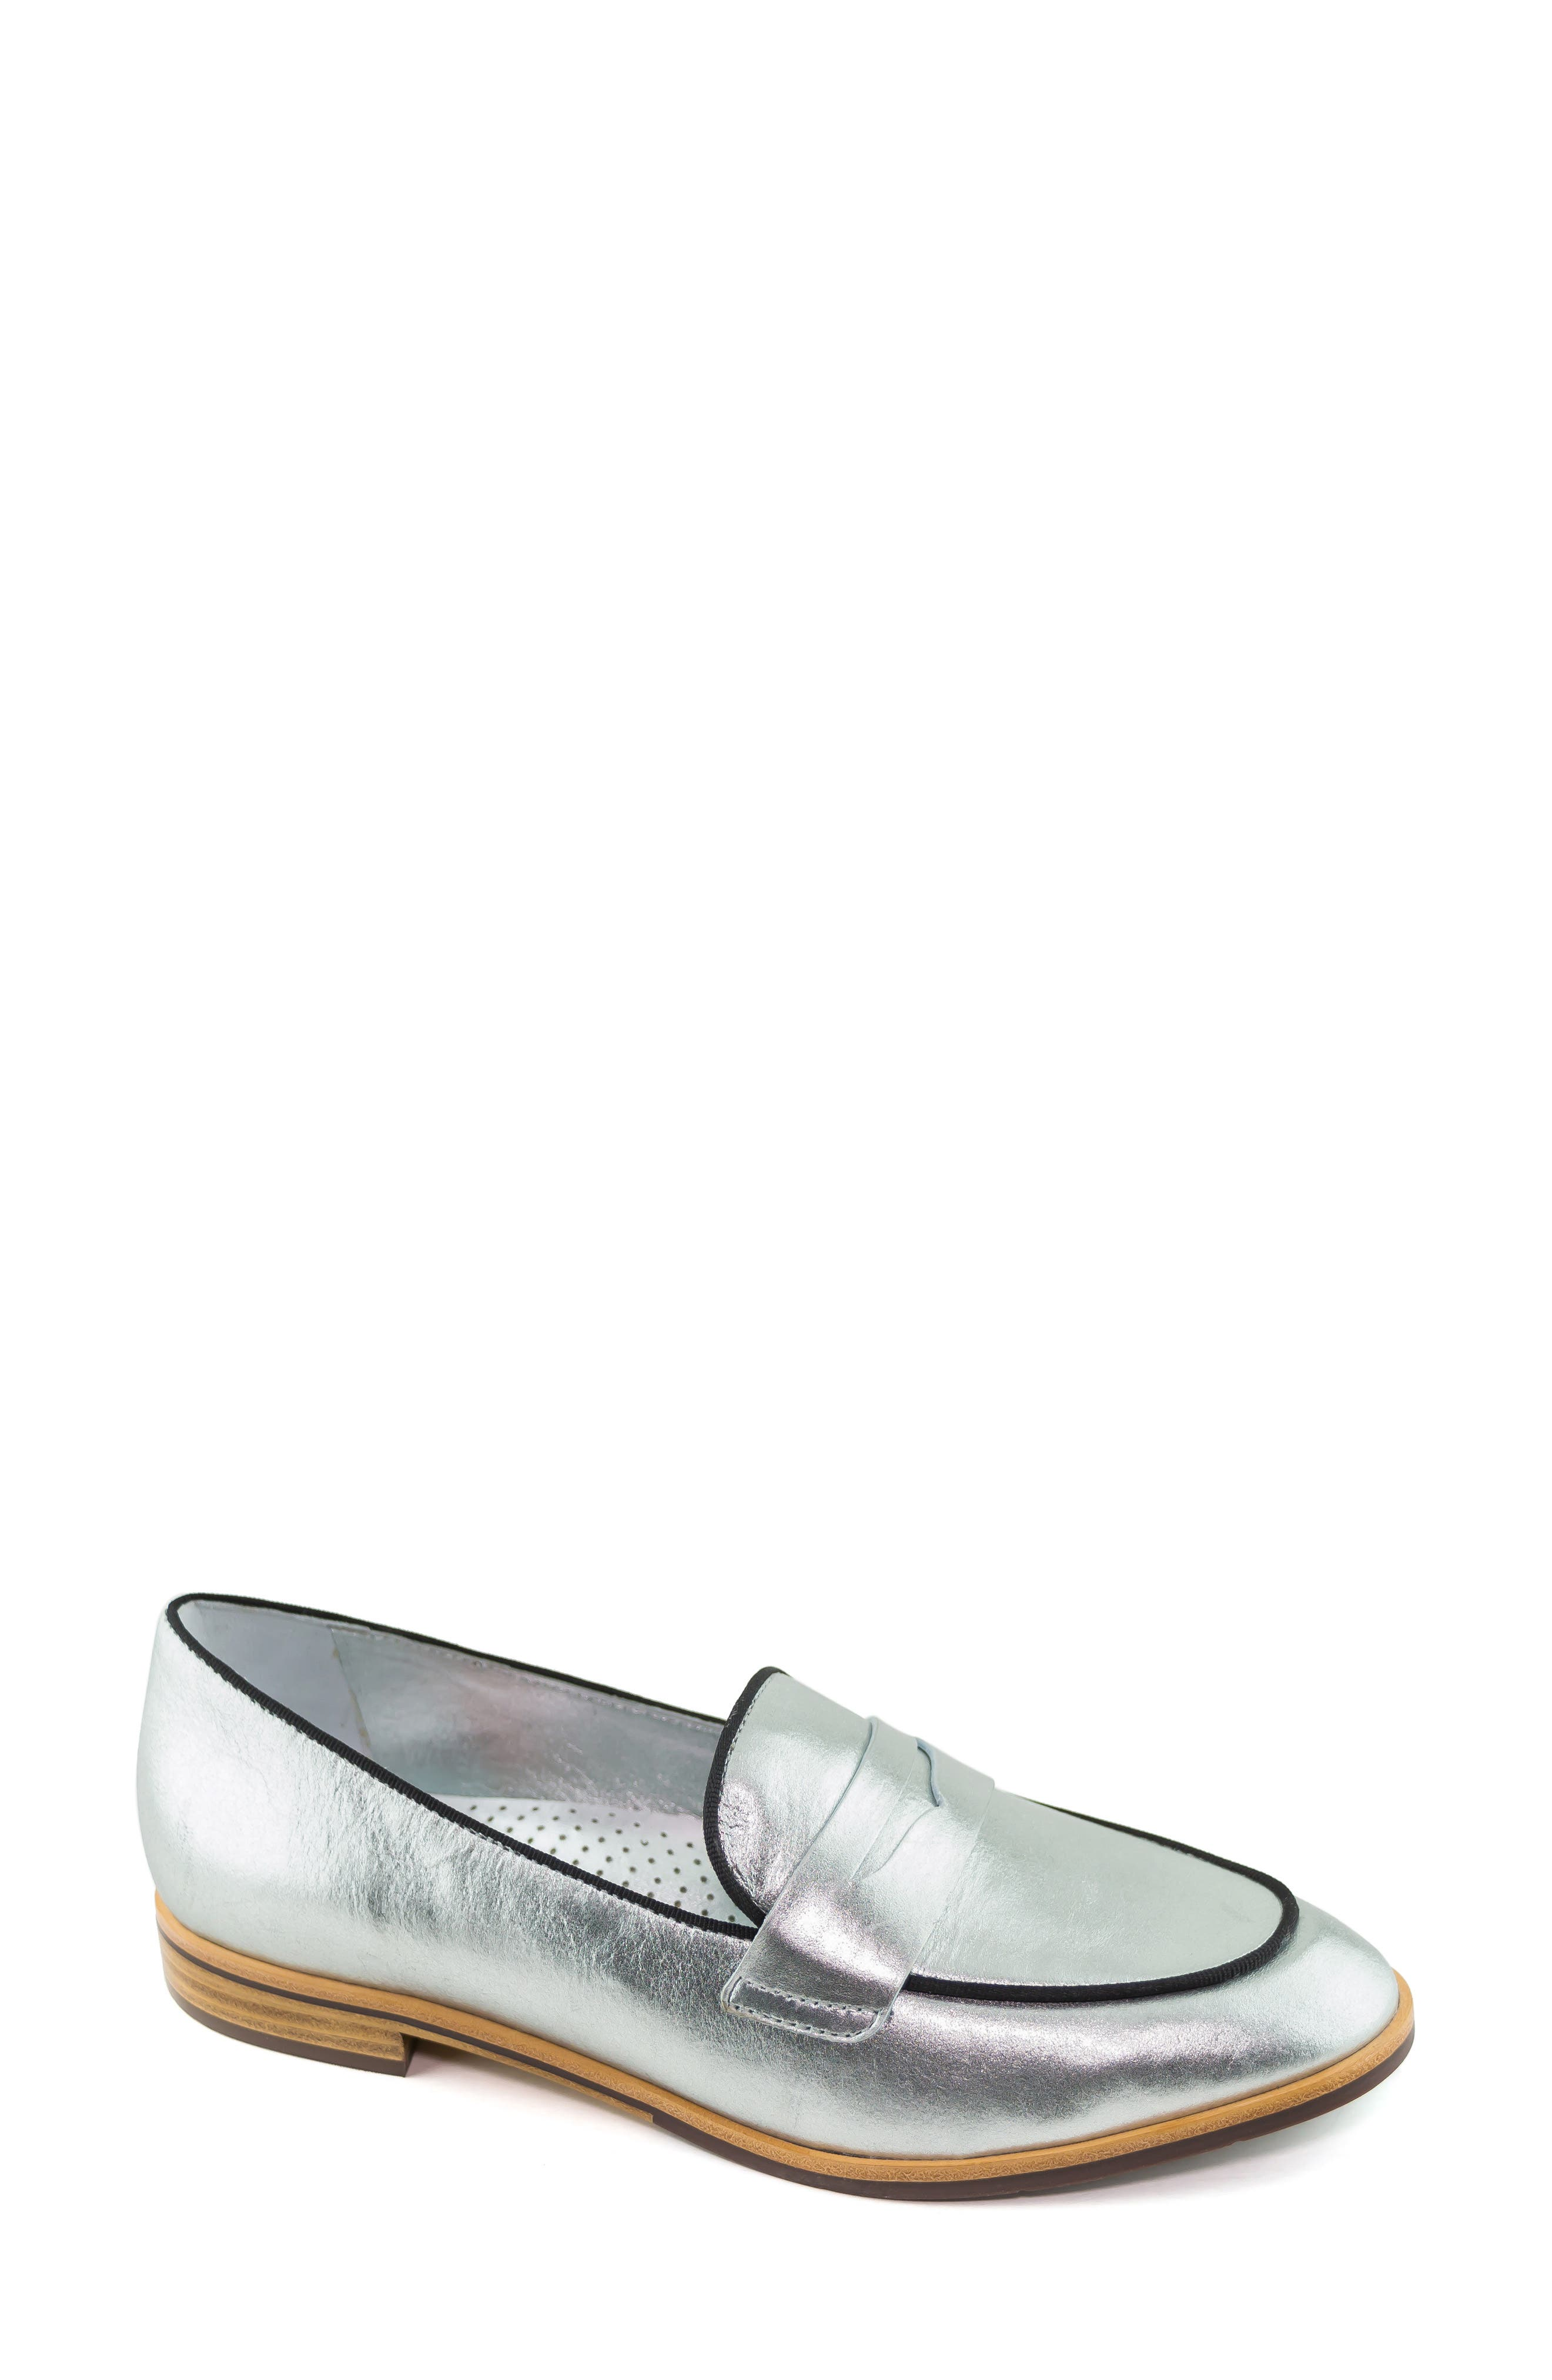 Bryant Park Loafer,                             Main thumbnail 1, color,                             GIPSY SILVER LEATHER